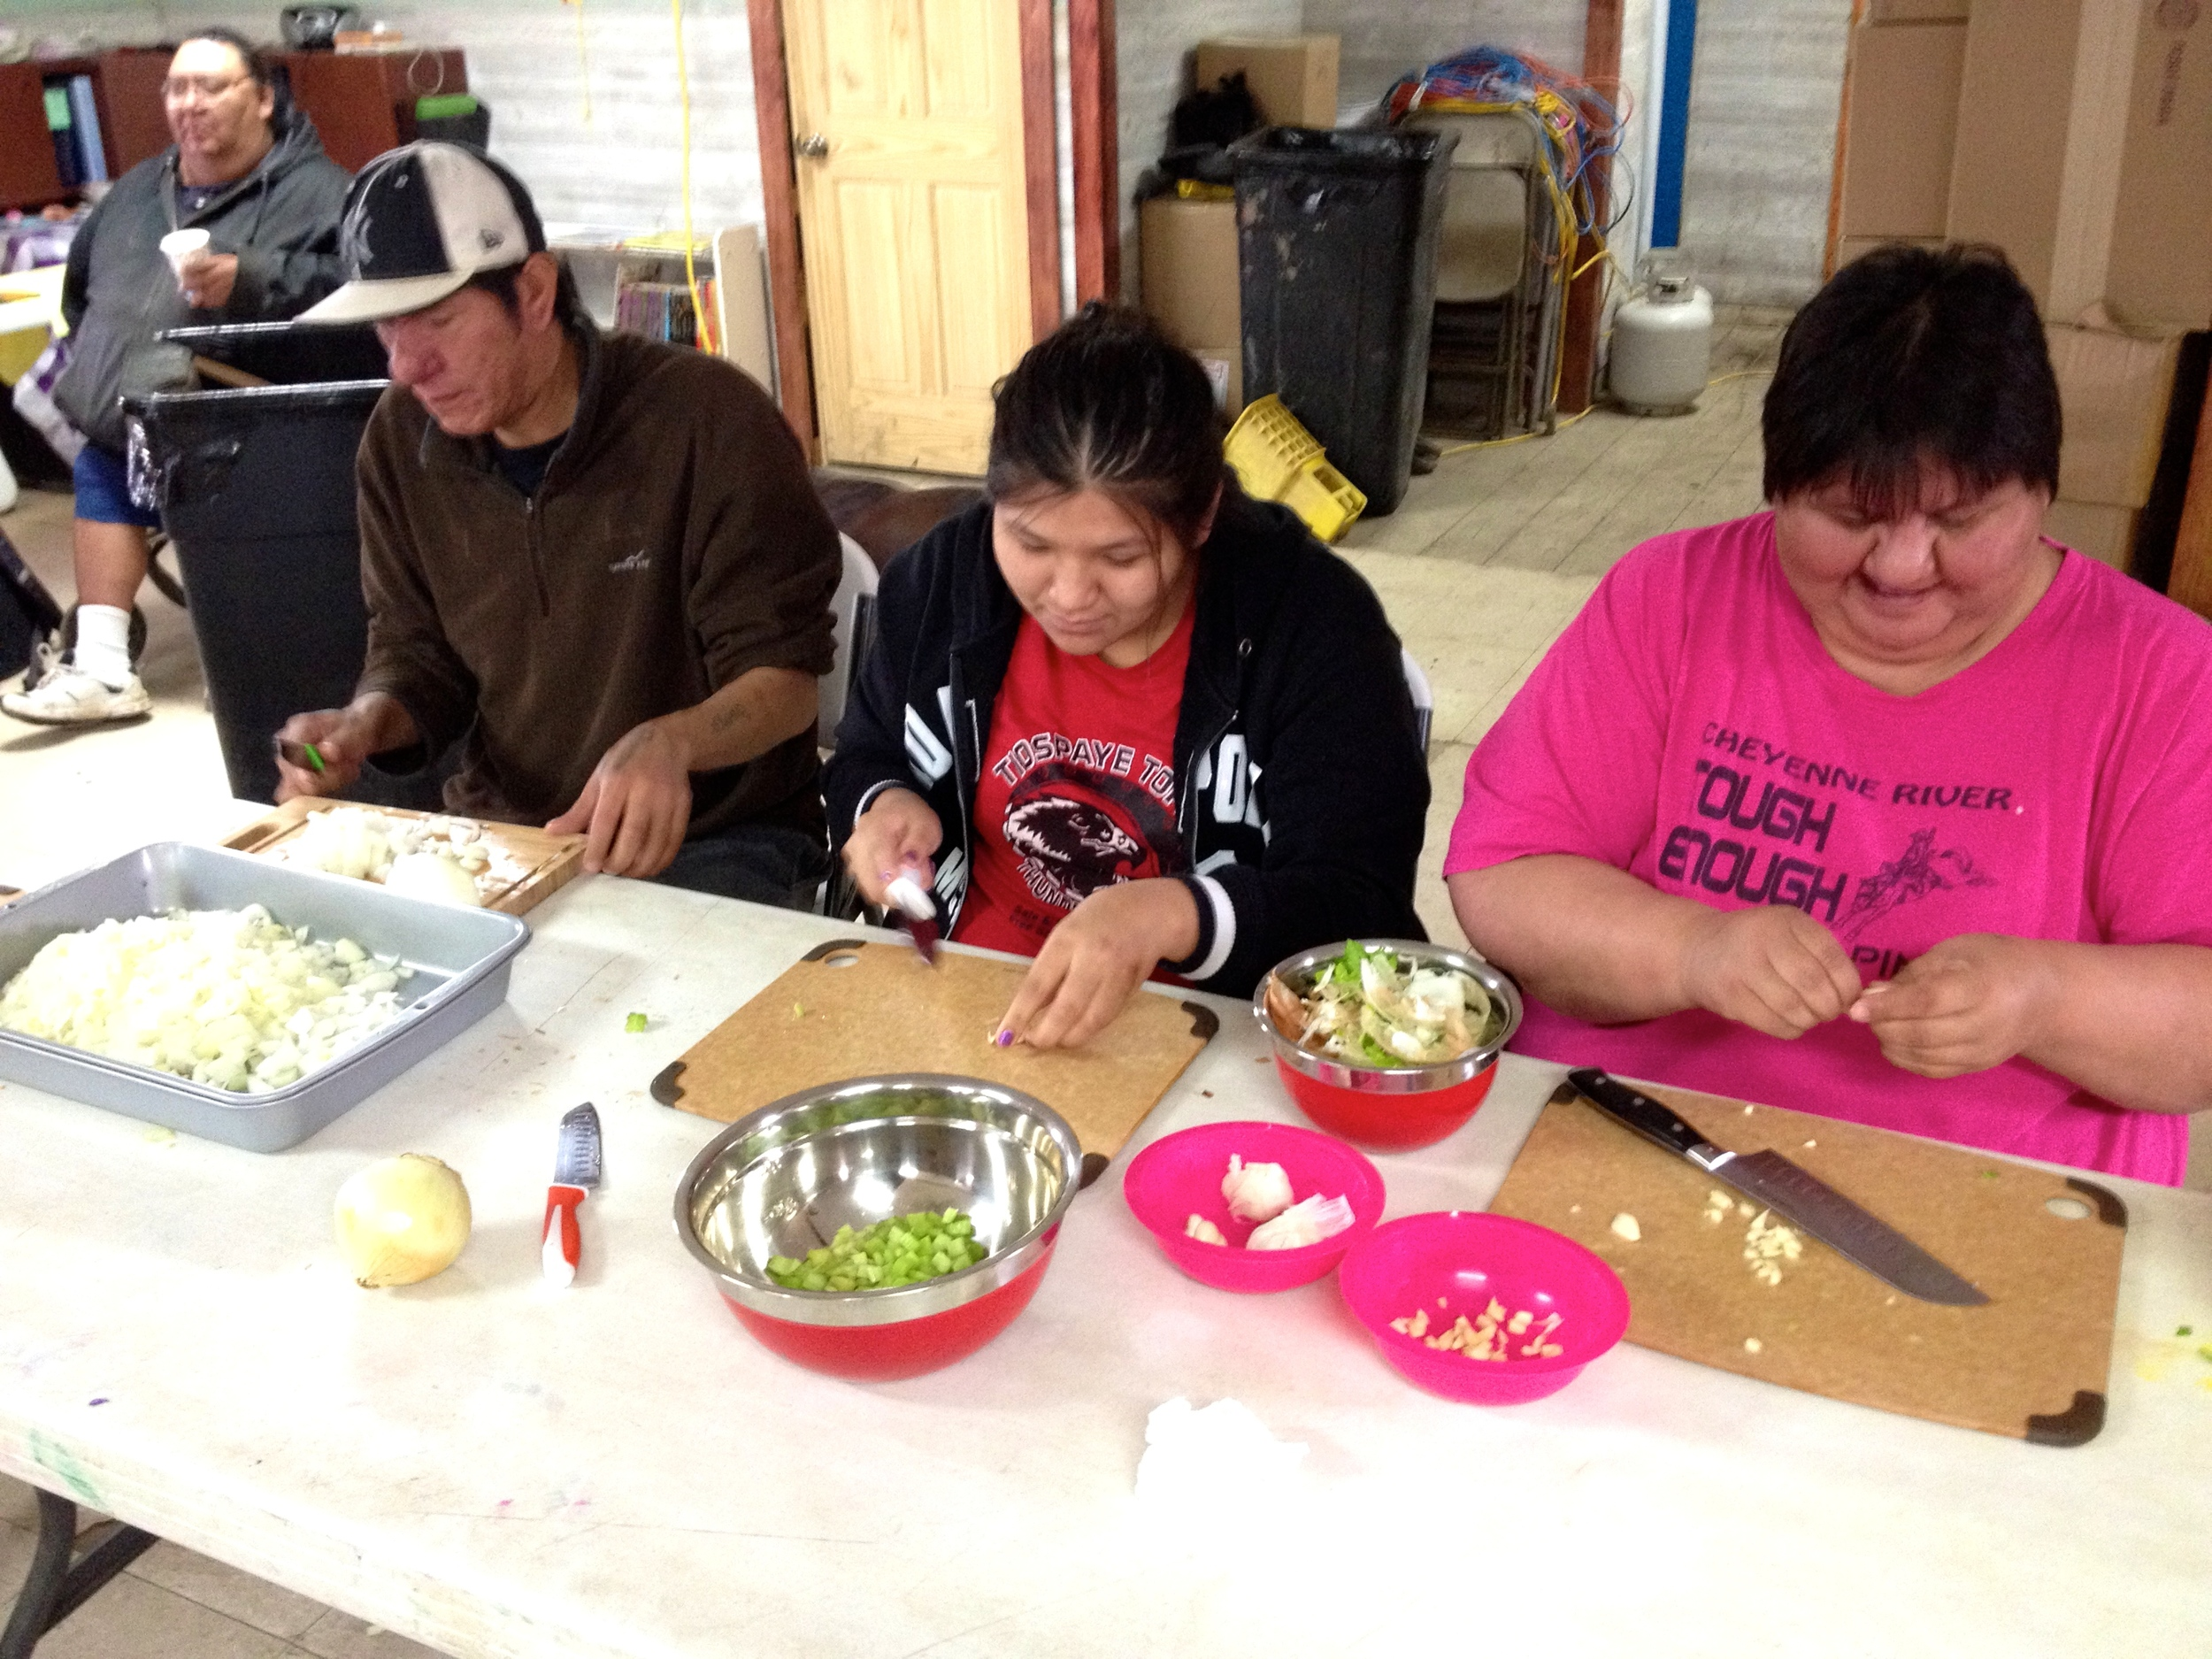 Learning new culinary skills and cooking simple, healthful meals